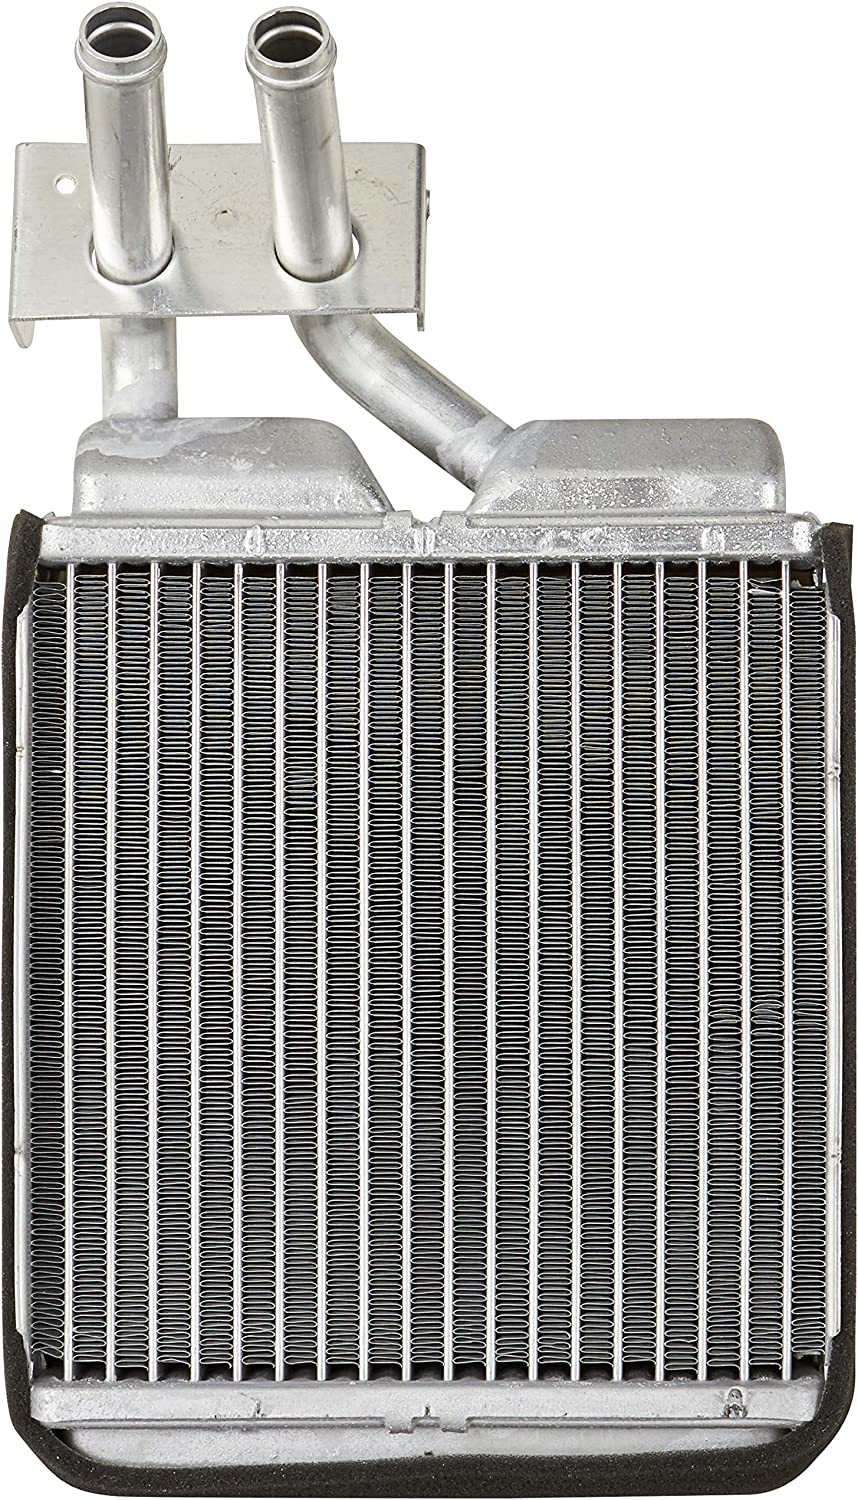 SPECTRA 99341 HEATER CORE FRONT NEW DODGE DAKOTA DURANGO